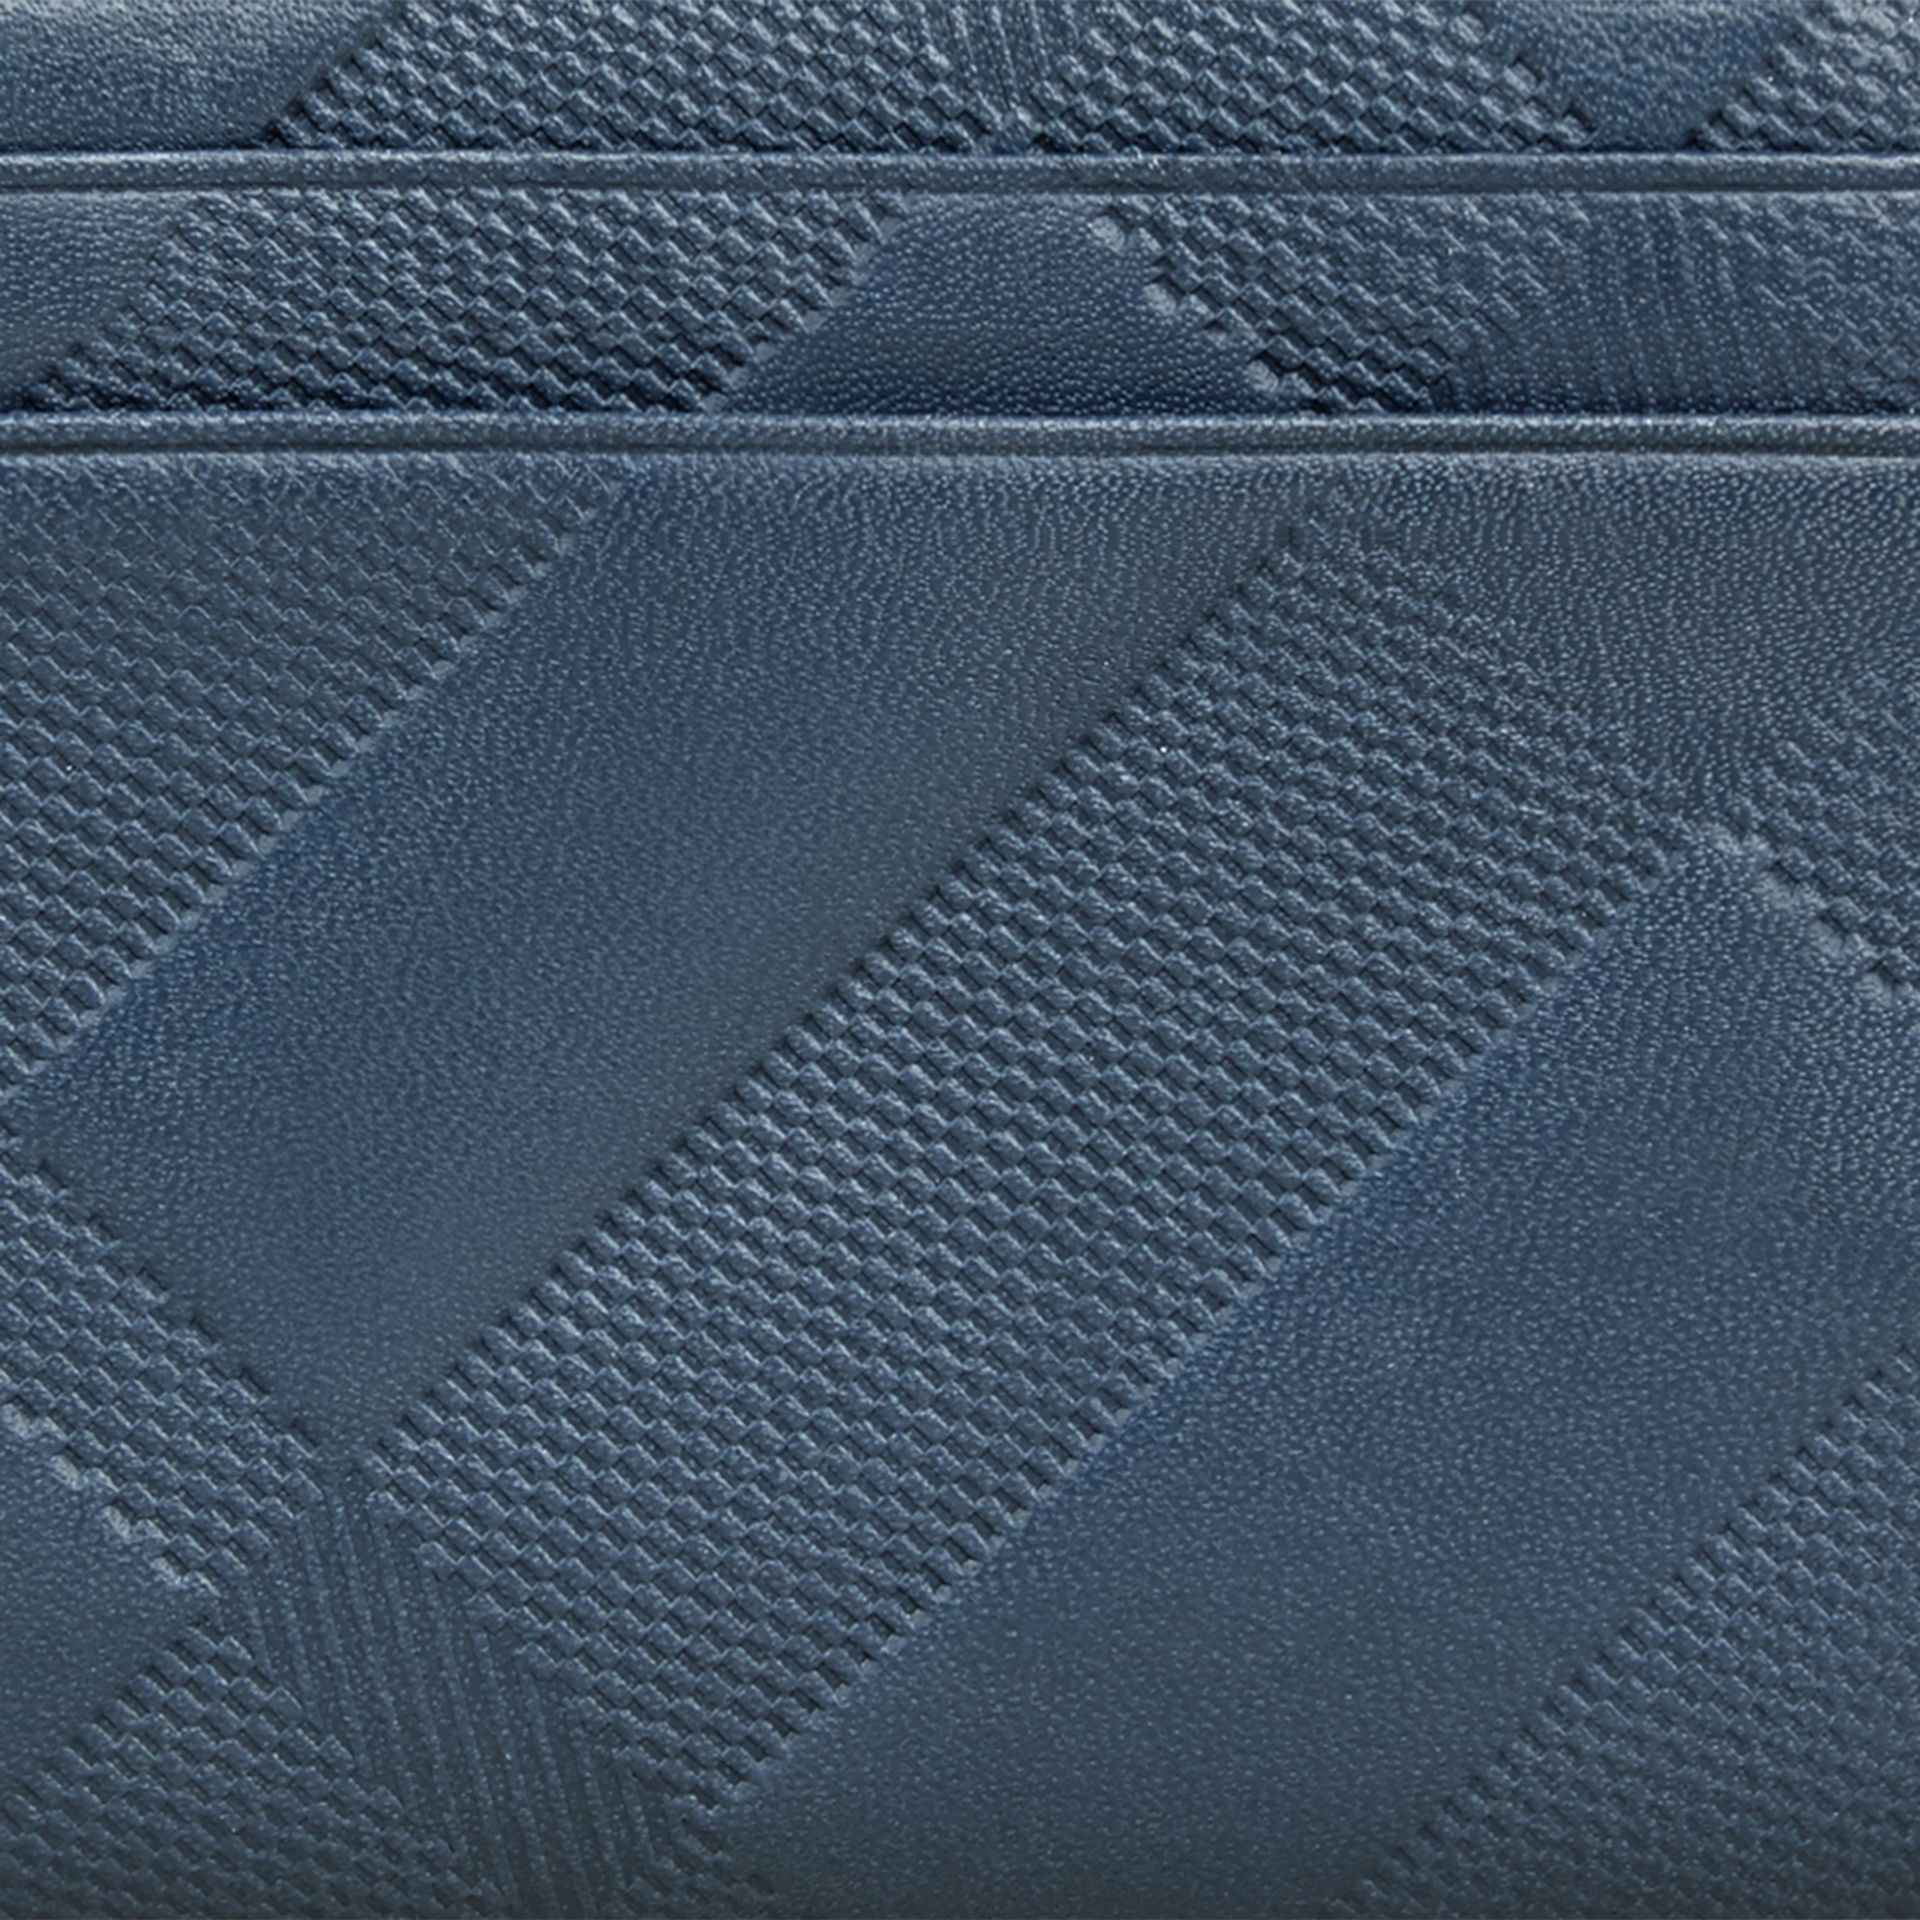 Steel blue Embossed Check Leather Folding Wallet Steel Blue - gallery image 2